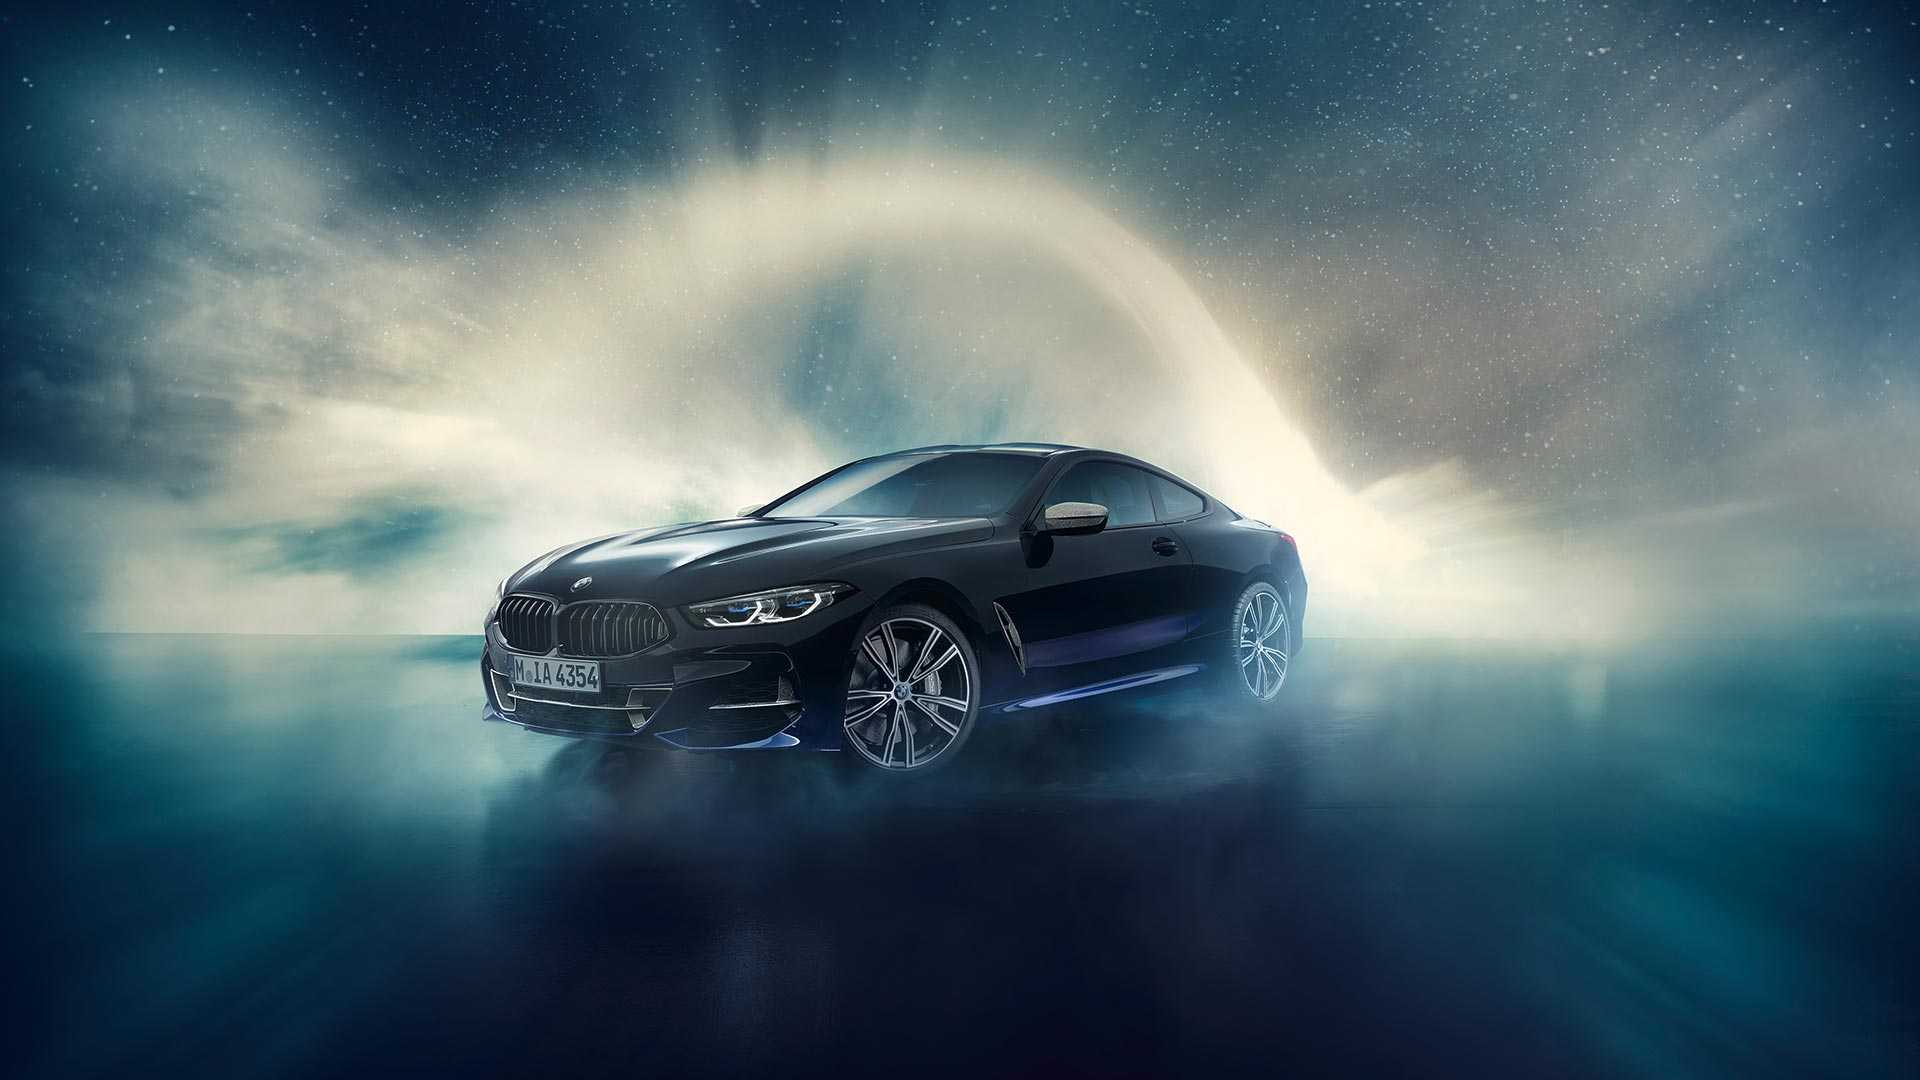 bmw-individual-m850i-night-sky (2)